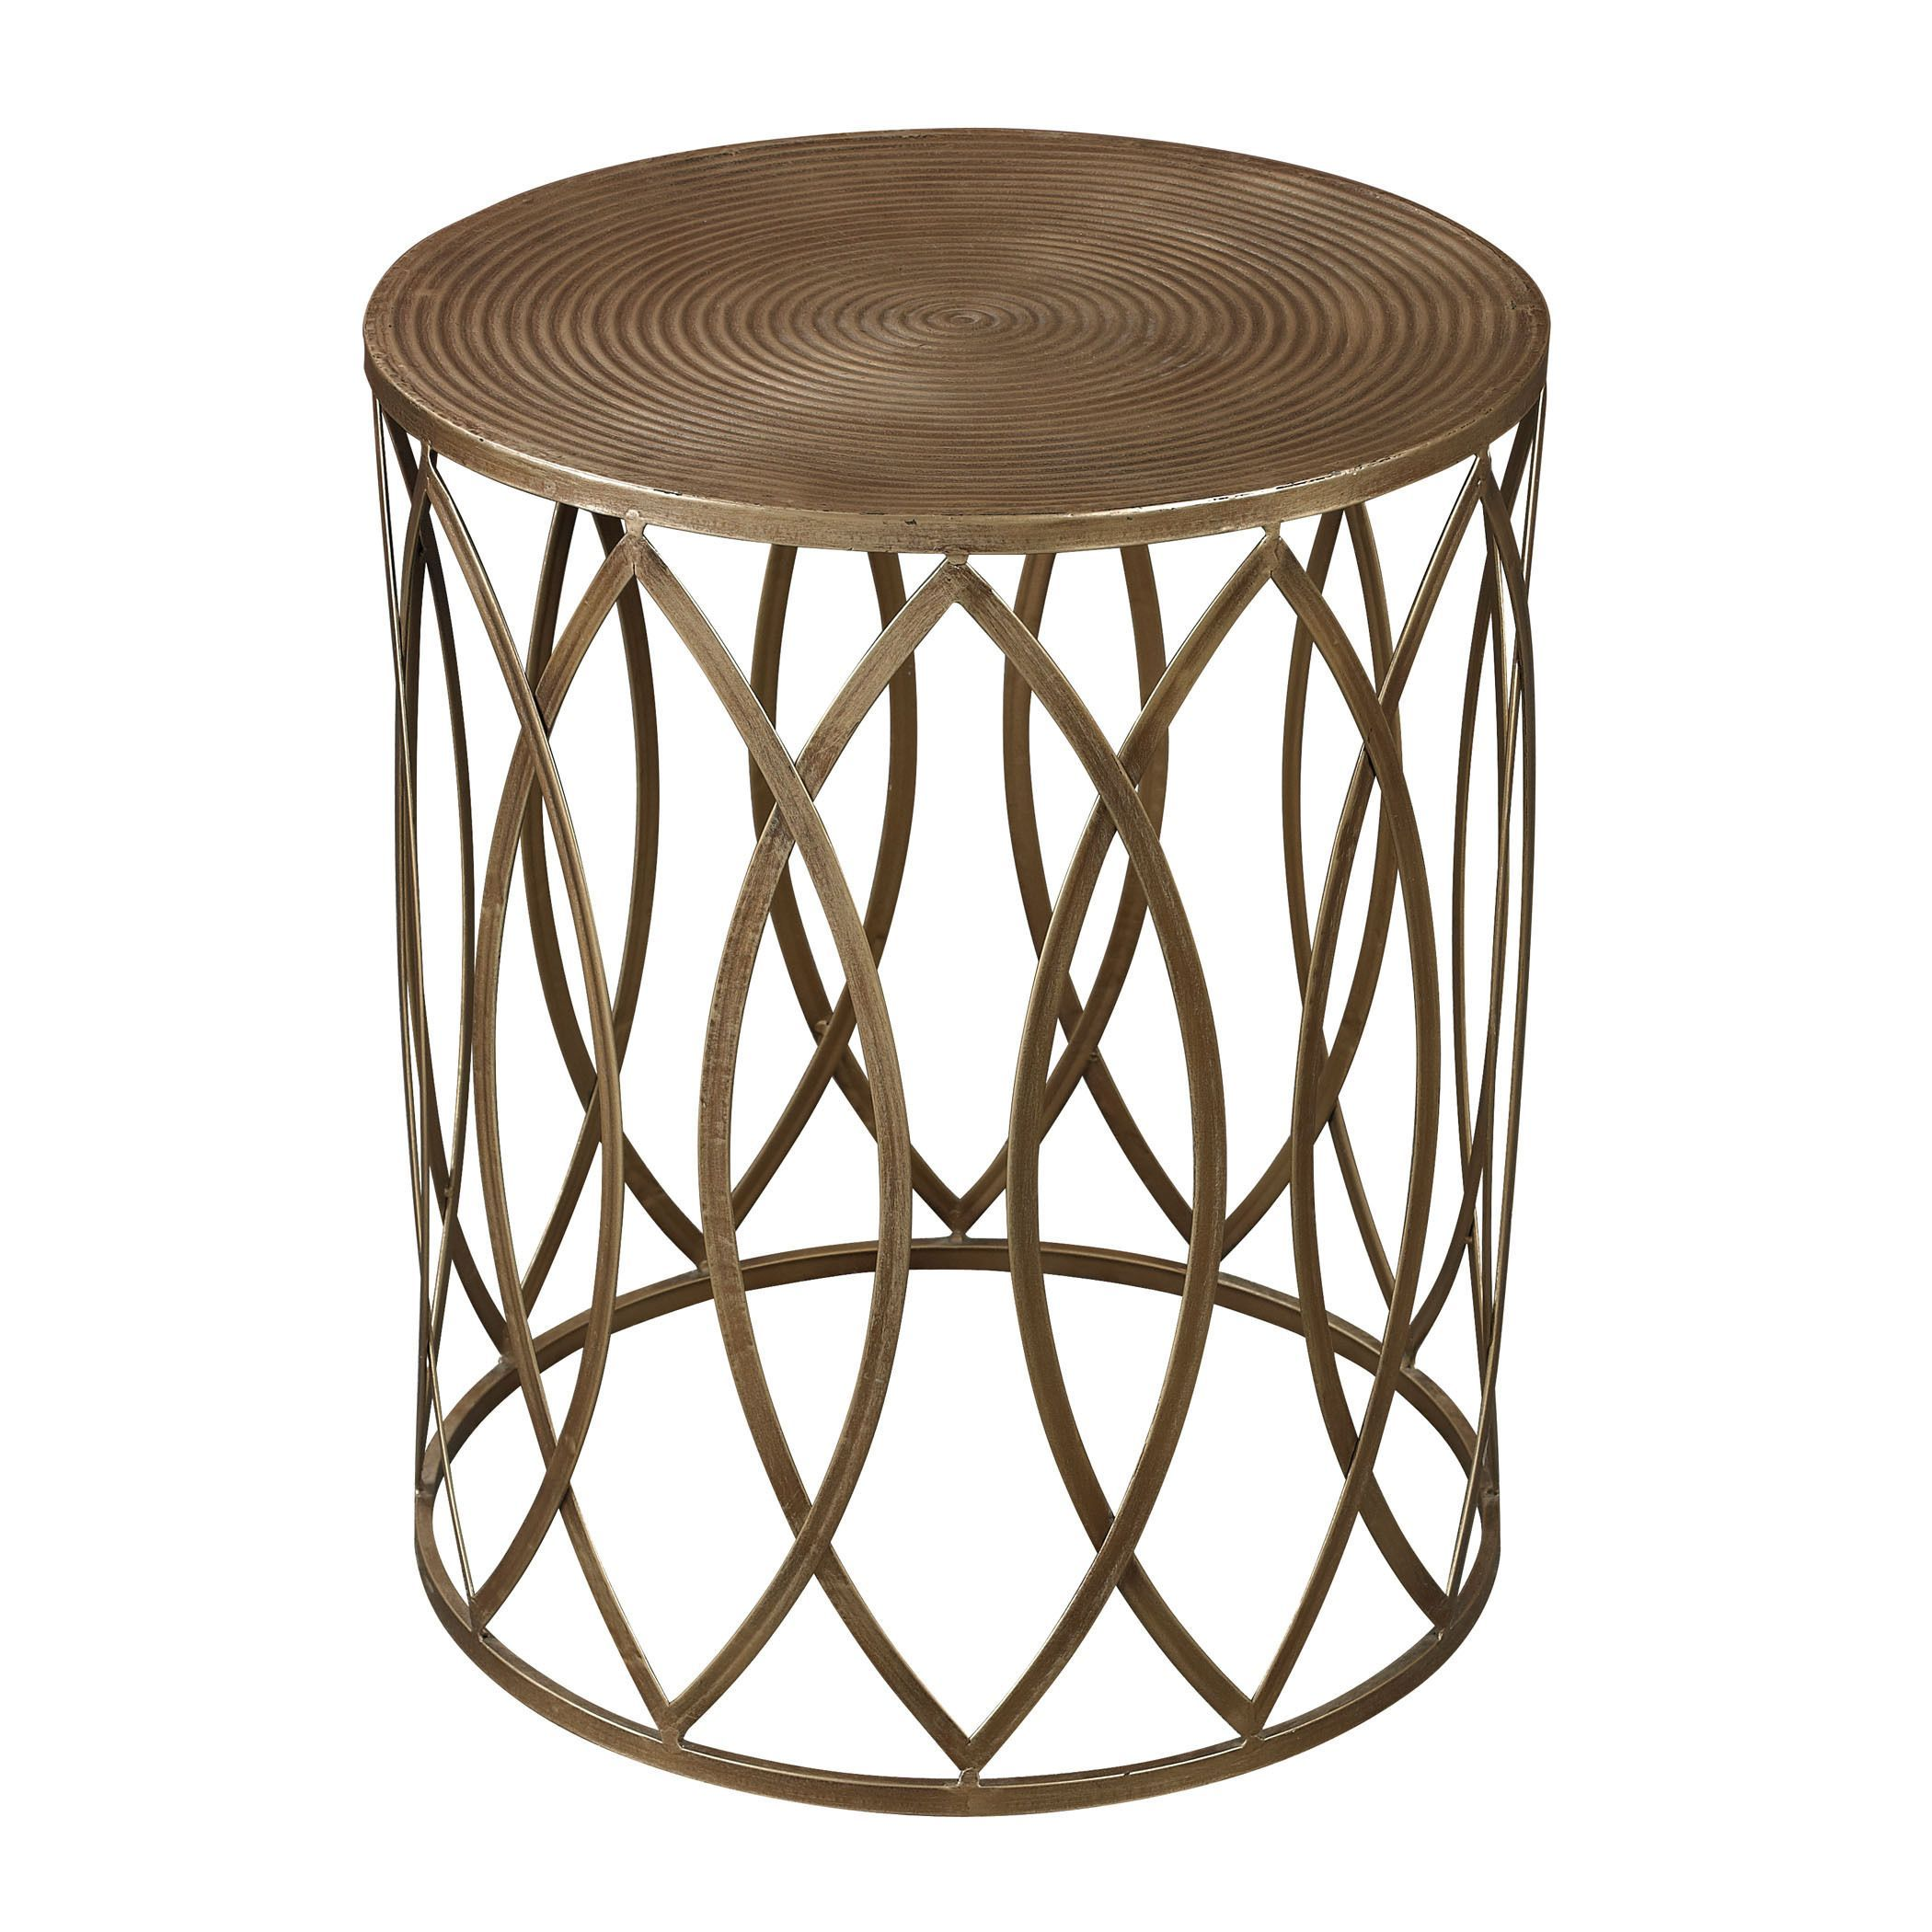 Uberlegen 136 Add Simple Style To Any Space With The Sutton Gold Leaf Accent Table.  This. Akzent TischeGoldener AkzenttischWohnzimmer ...